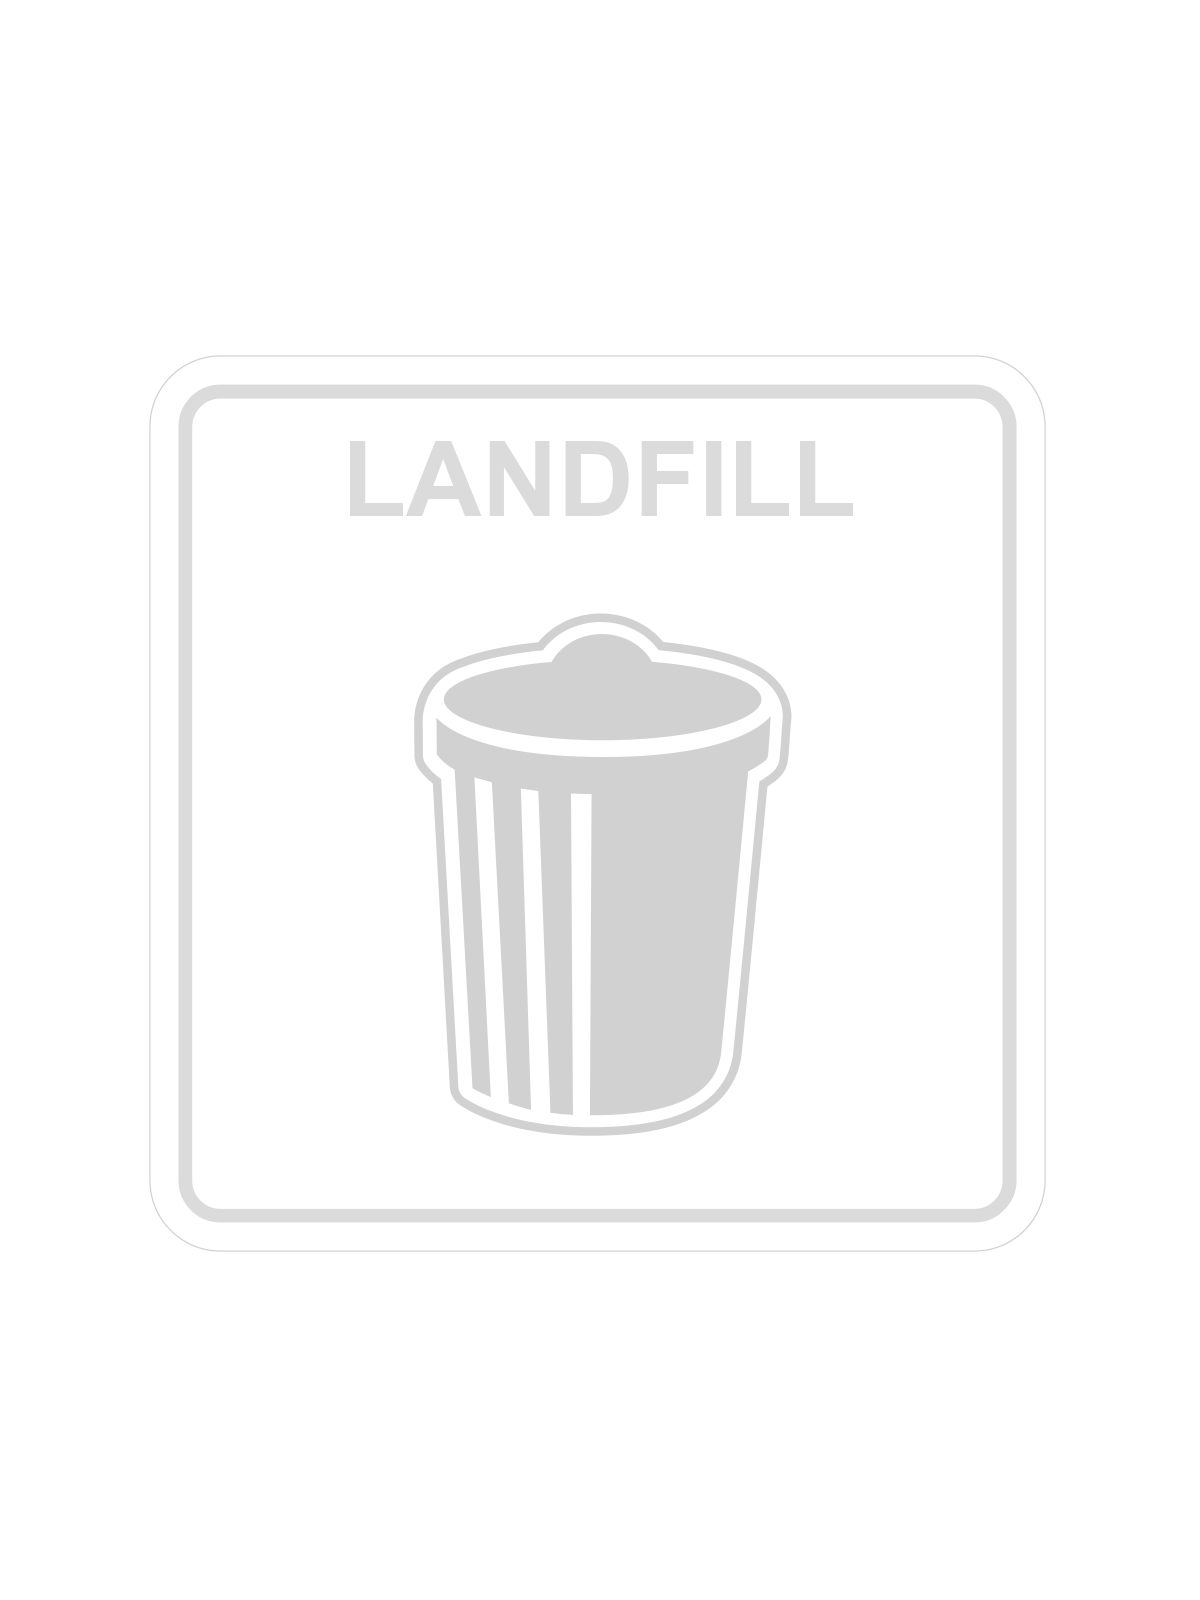 SQUARE LABEL LANDFILL